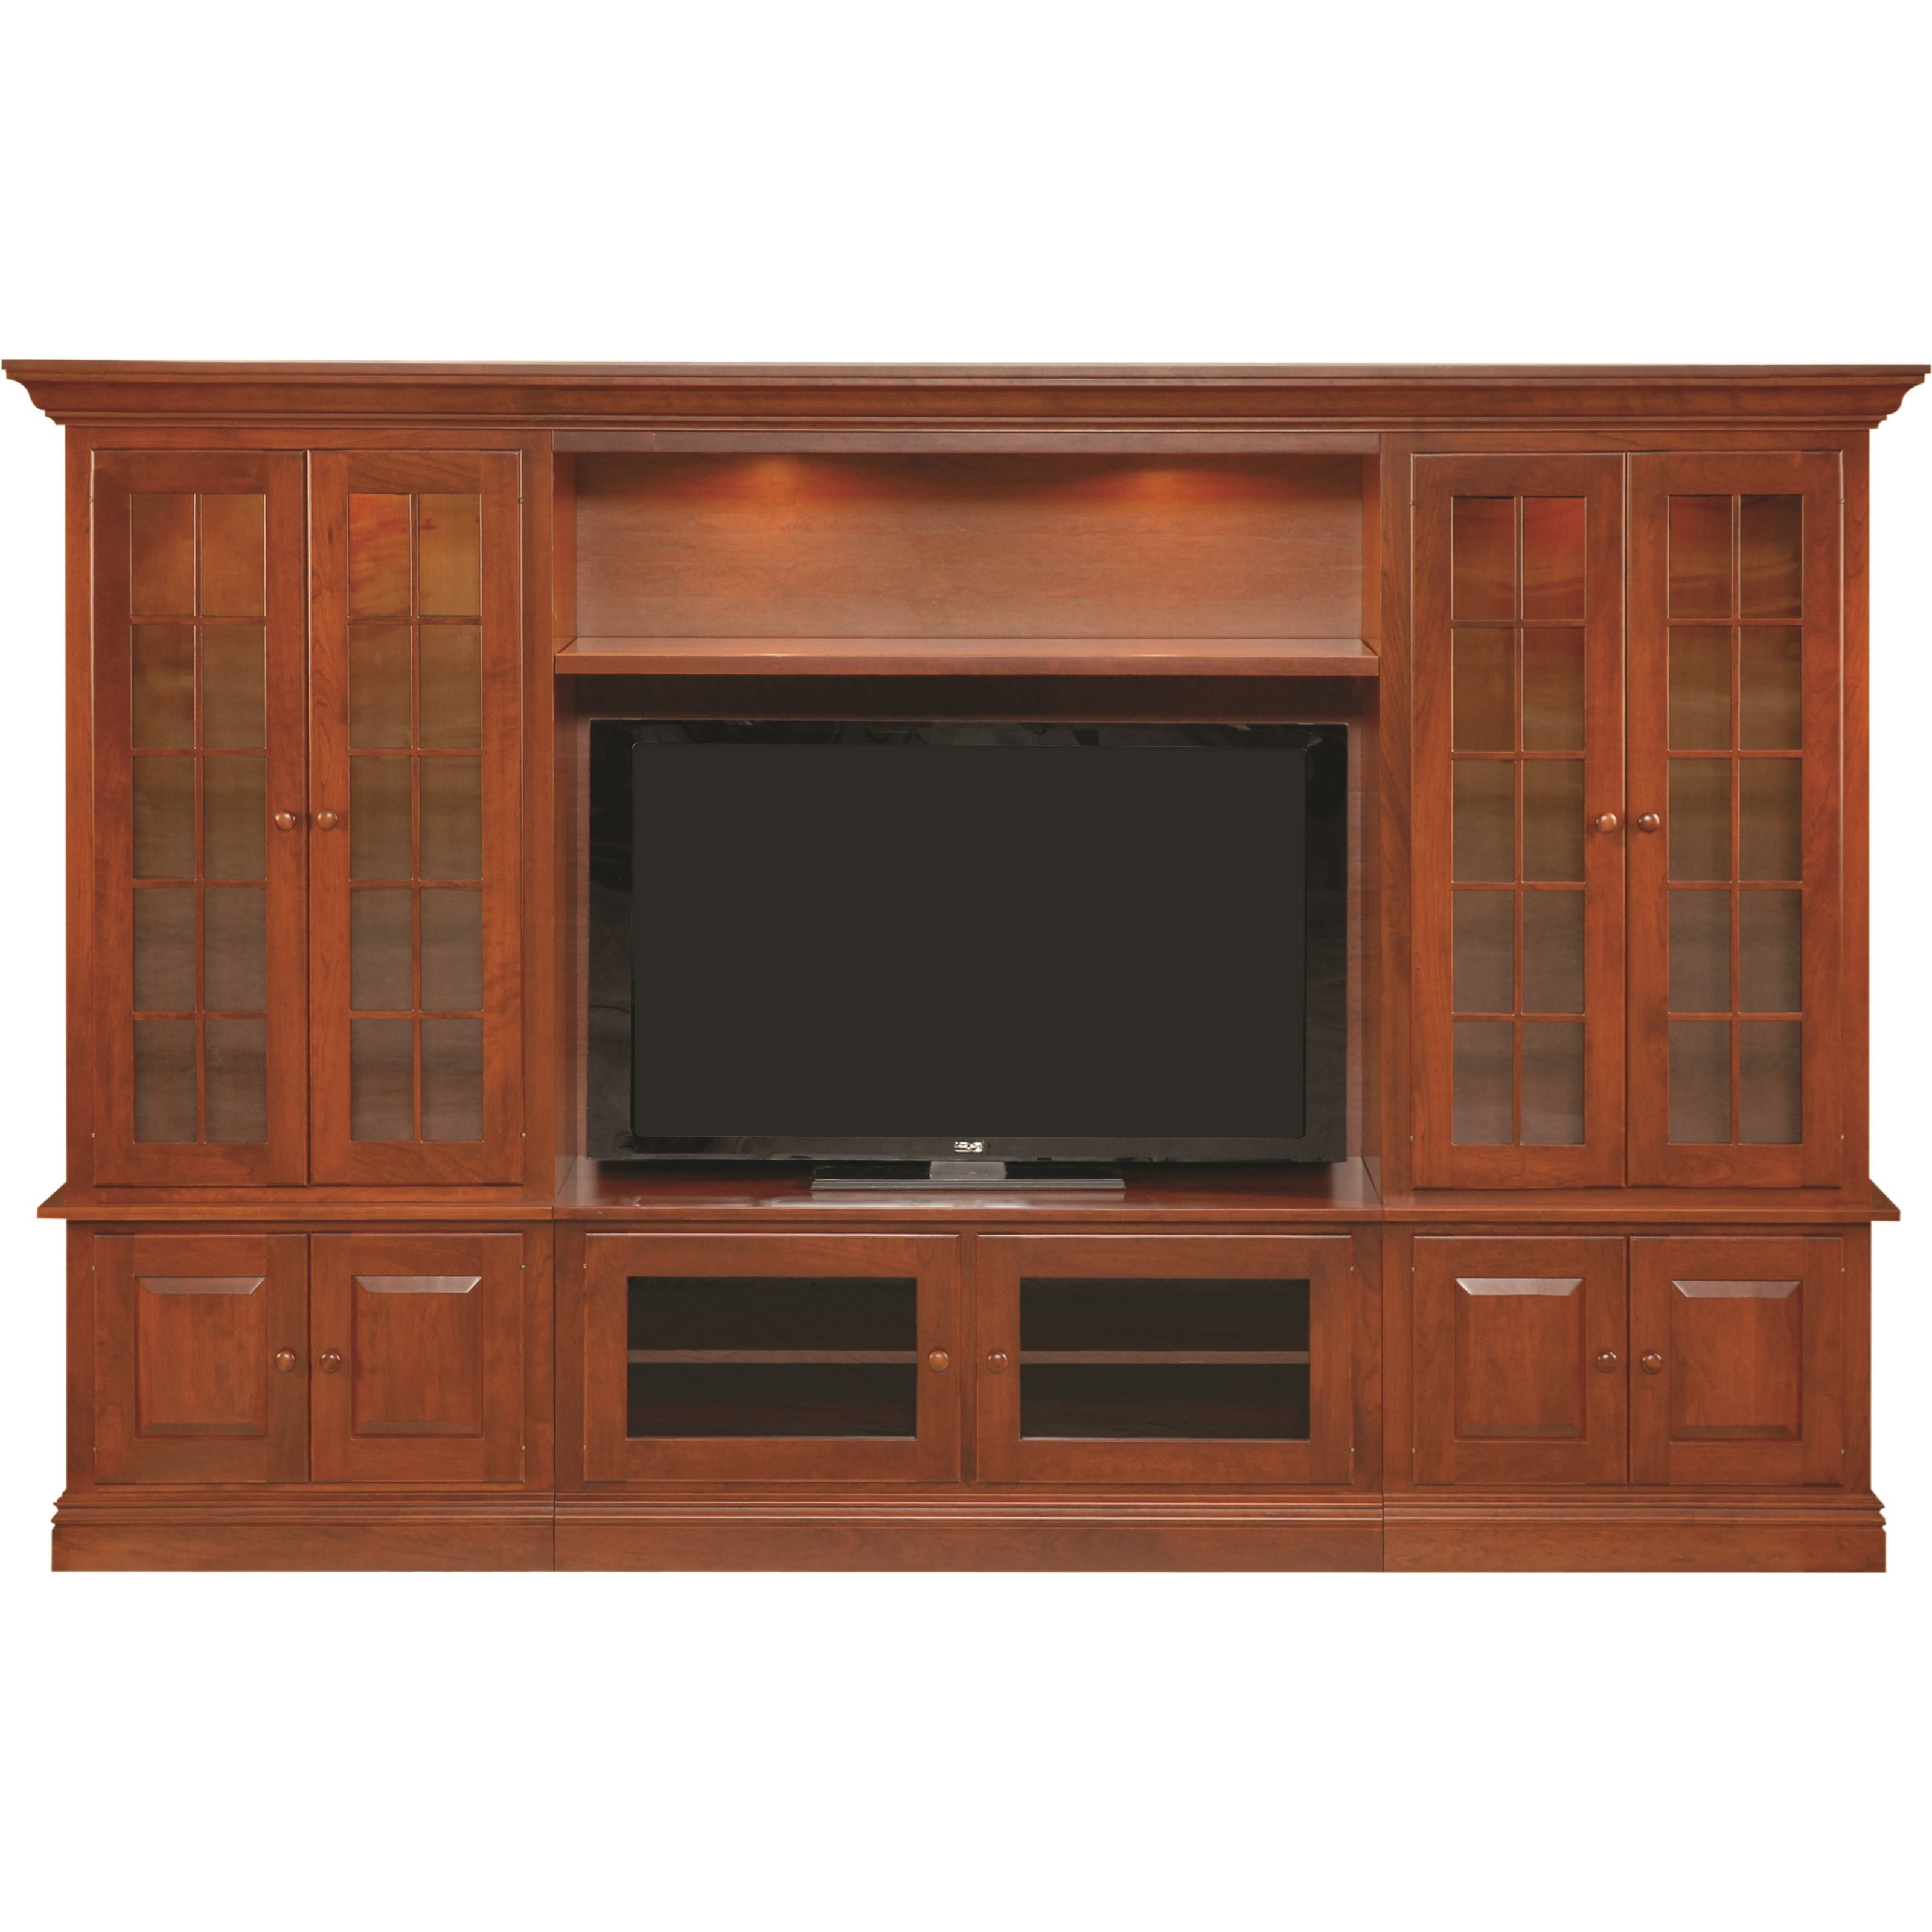 Entertainment Customizable Wall Unit by INTEG Wood Products at Saugerties Furniture Mart